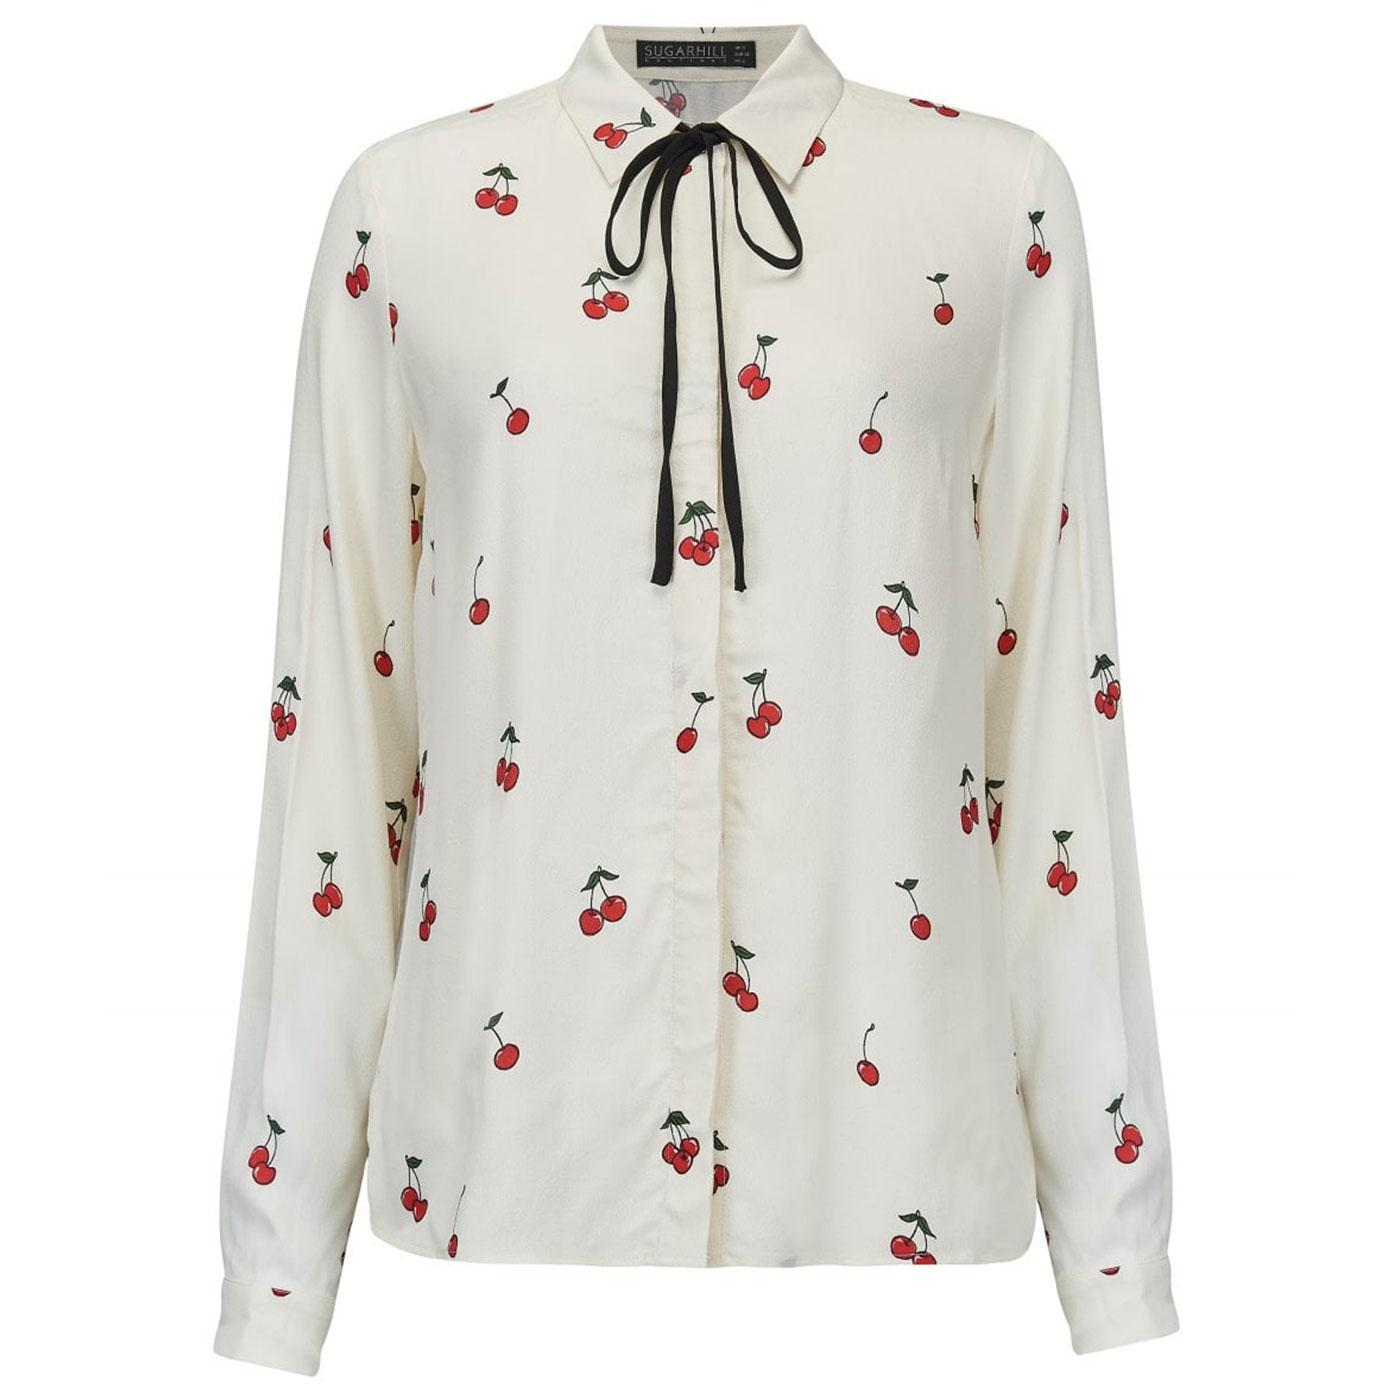 Catrina SUGARHILL BOUTIQUE Winterberry Shirt